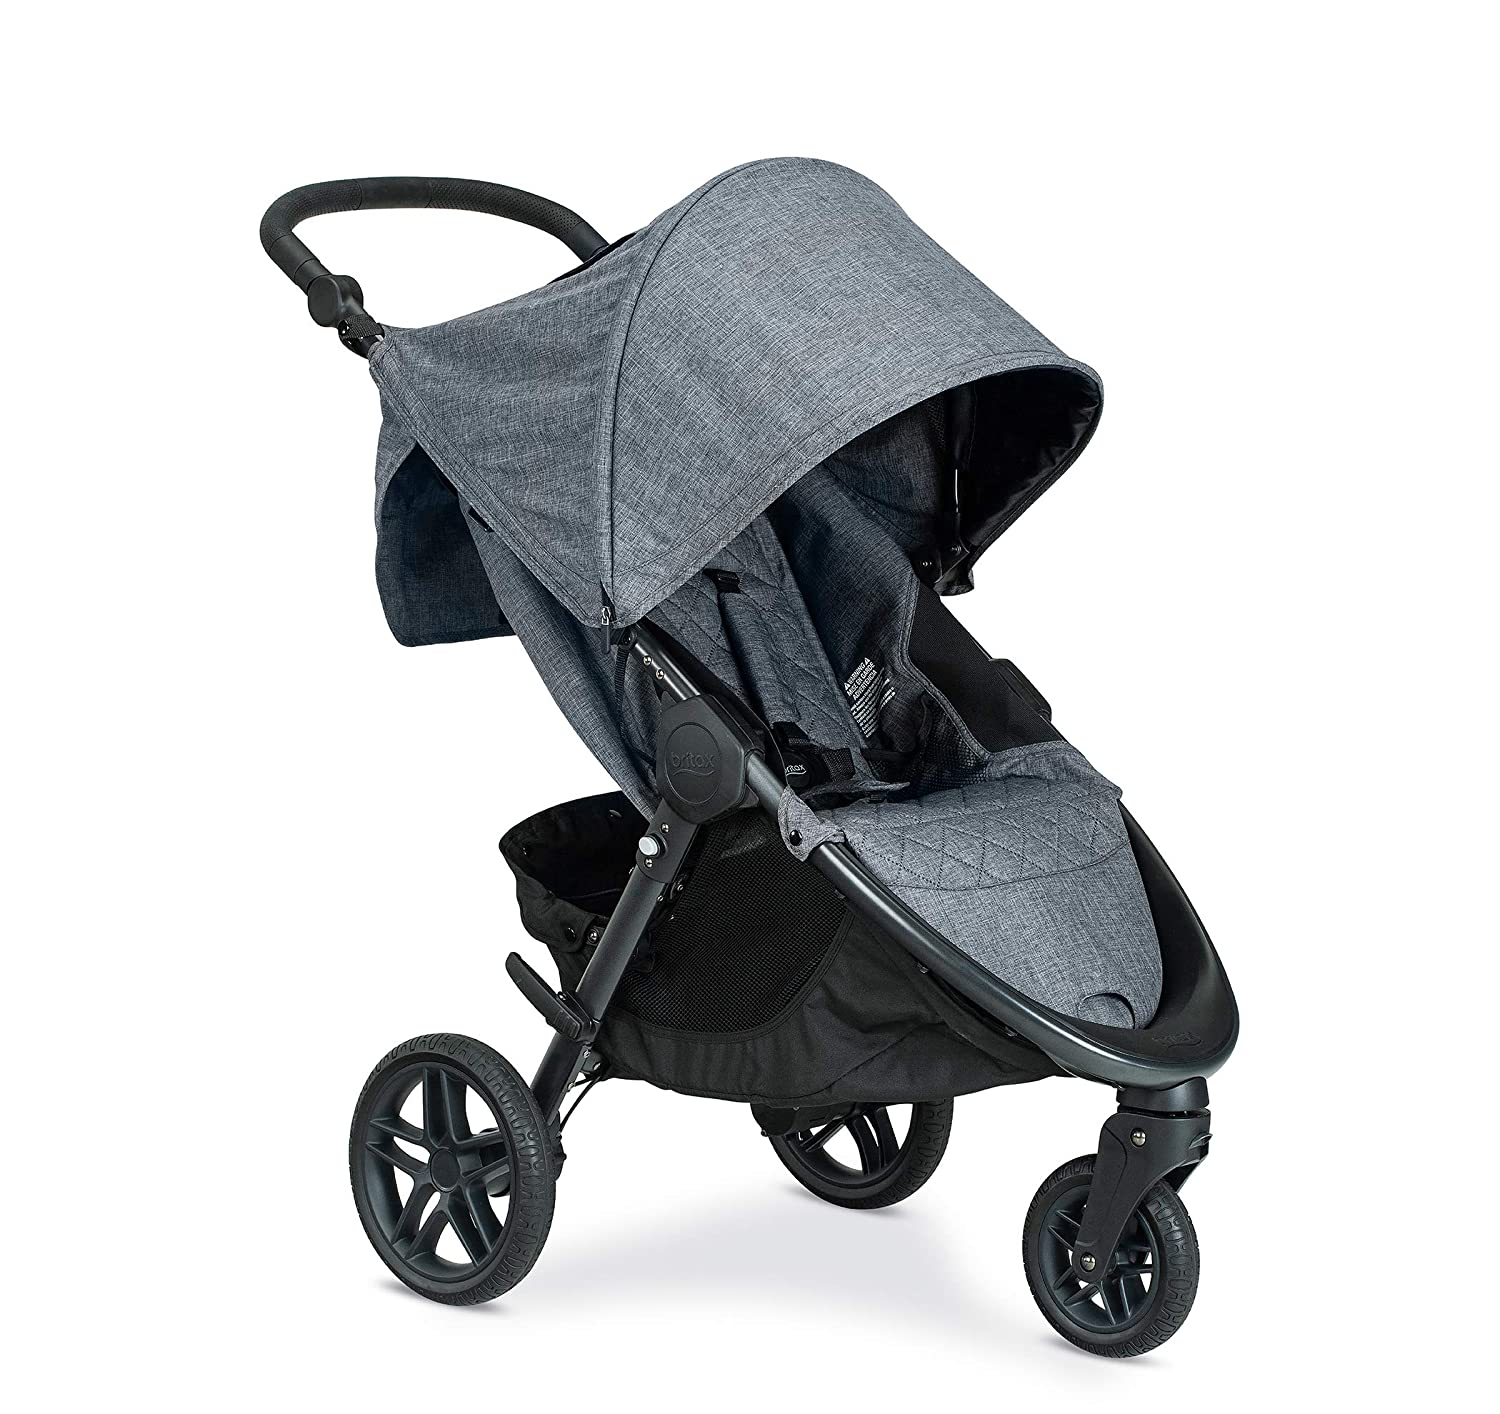 Britax B-Free Stroller | All Terrain Tires + Adjustable Handlebar + Extra Storage with Front Access + One Hand, Easy Fold, Vibe